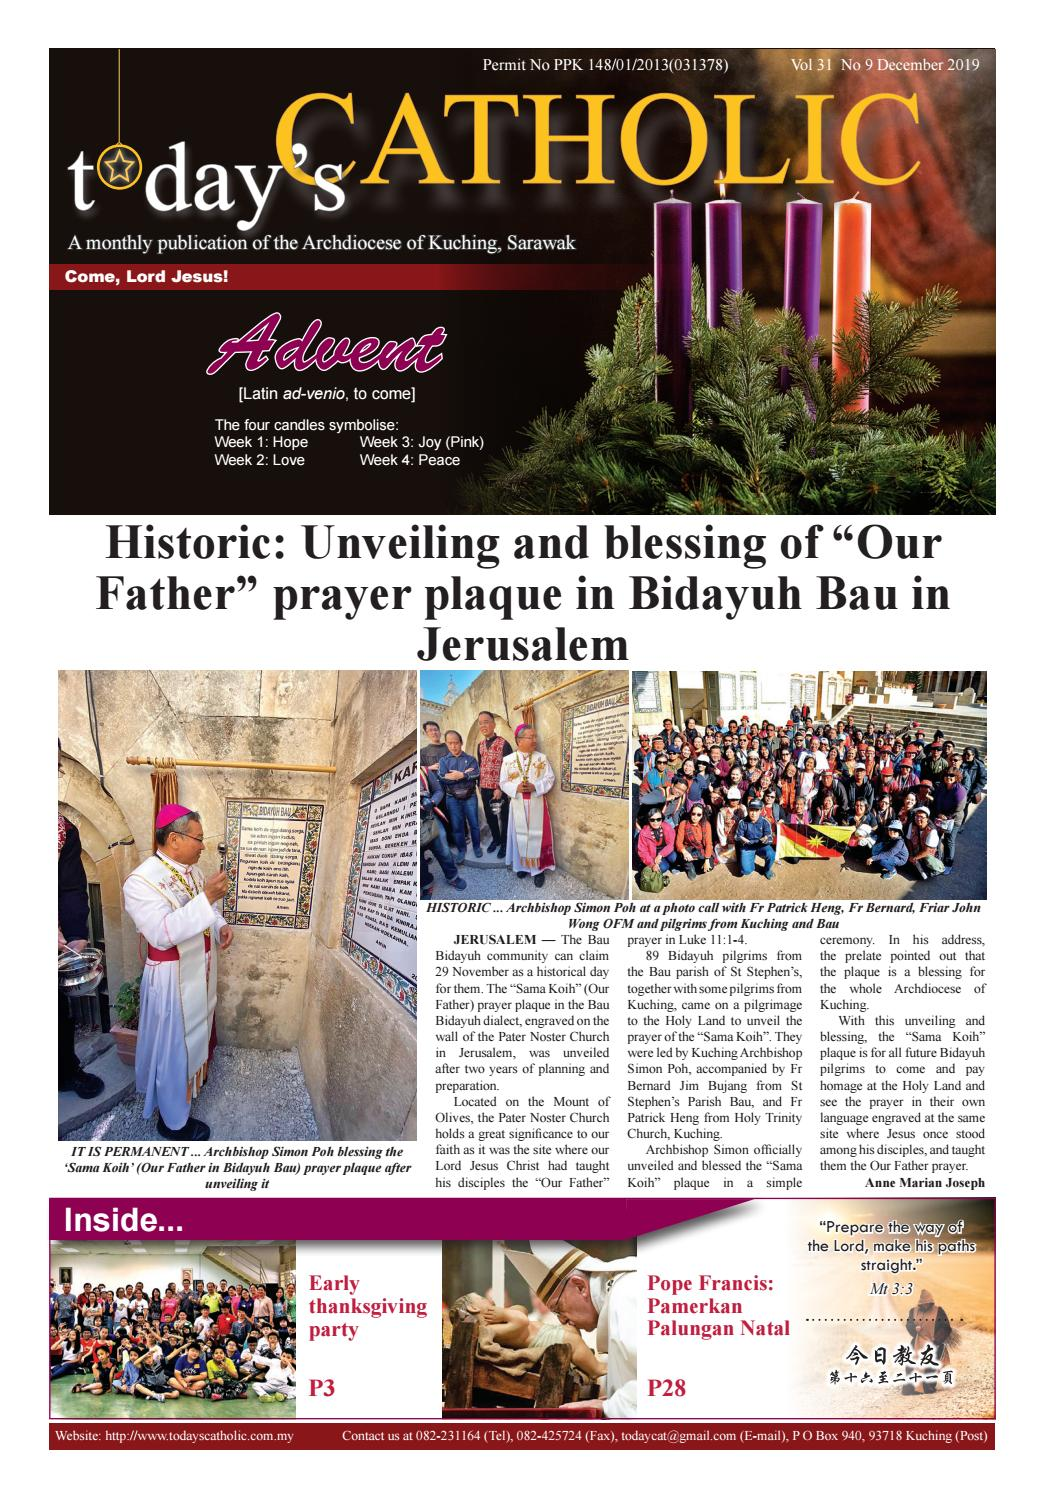 Today S Catholic Vol 31 No 9 December 2019 By Todays Catholic Issuu